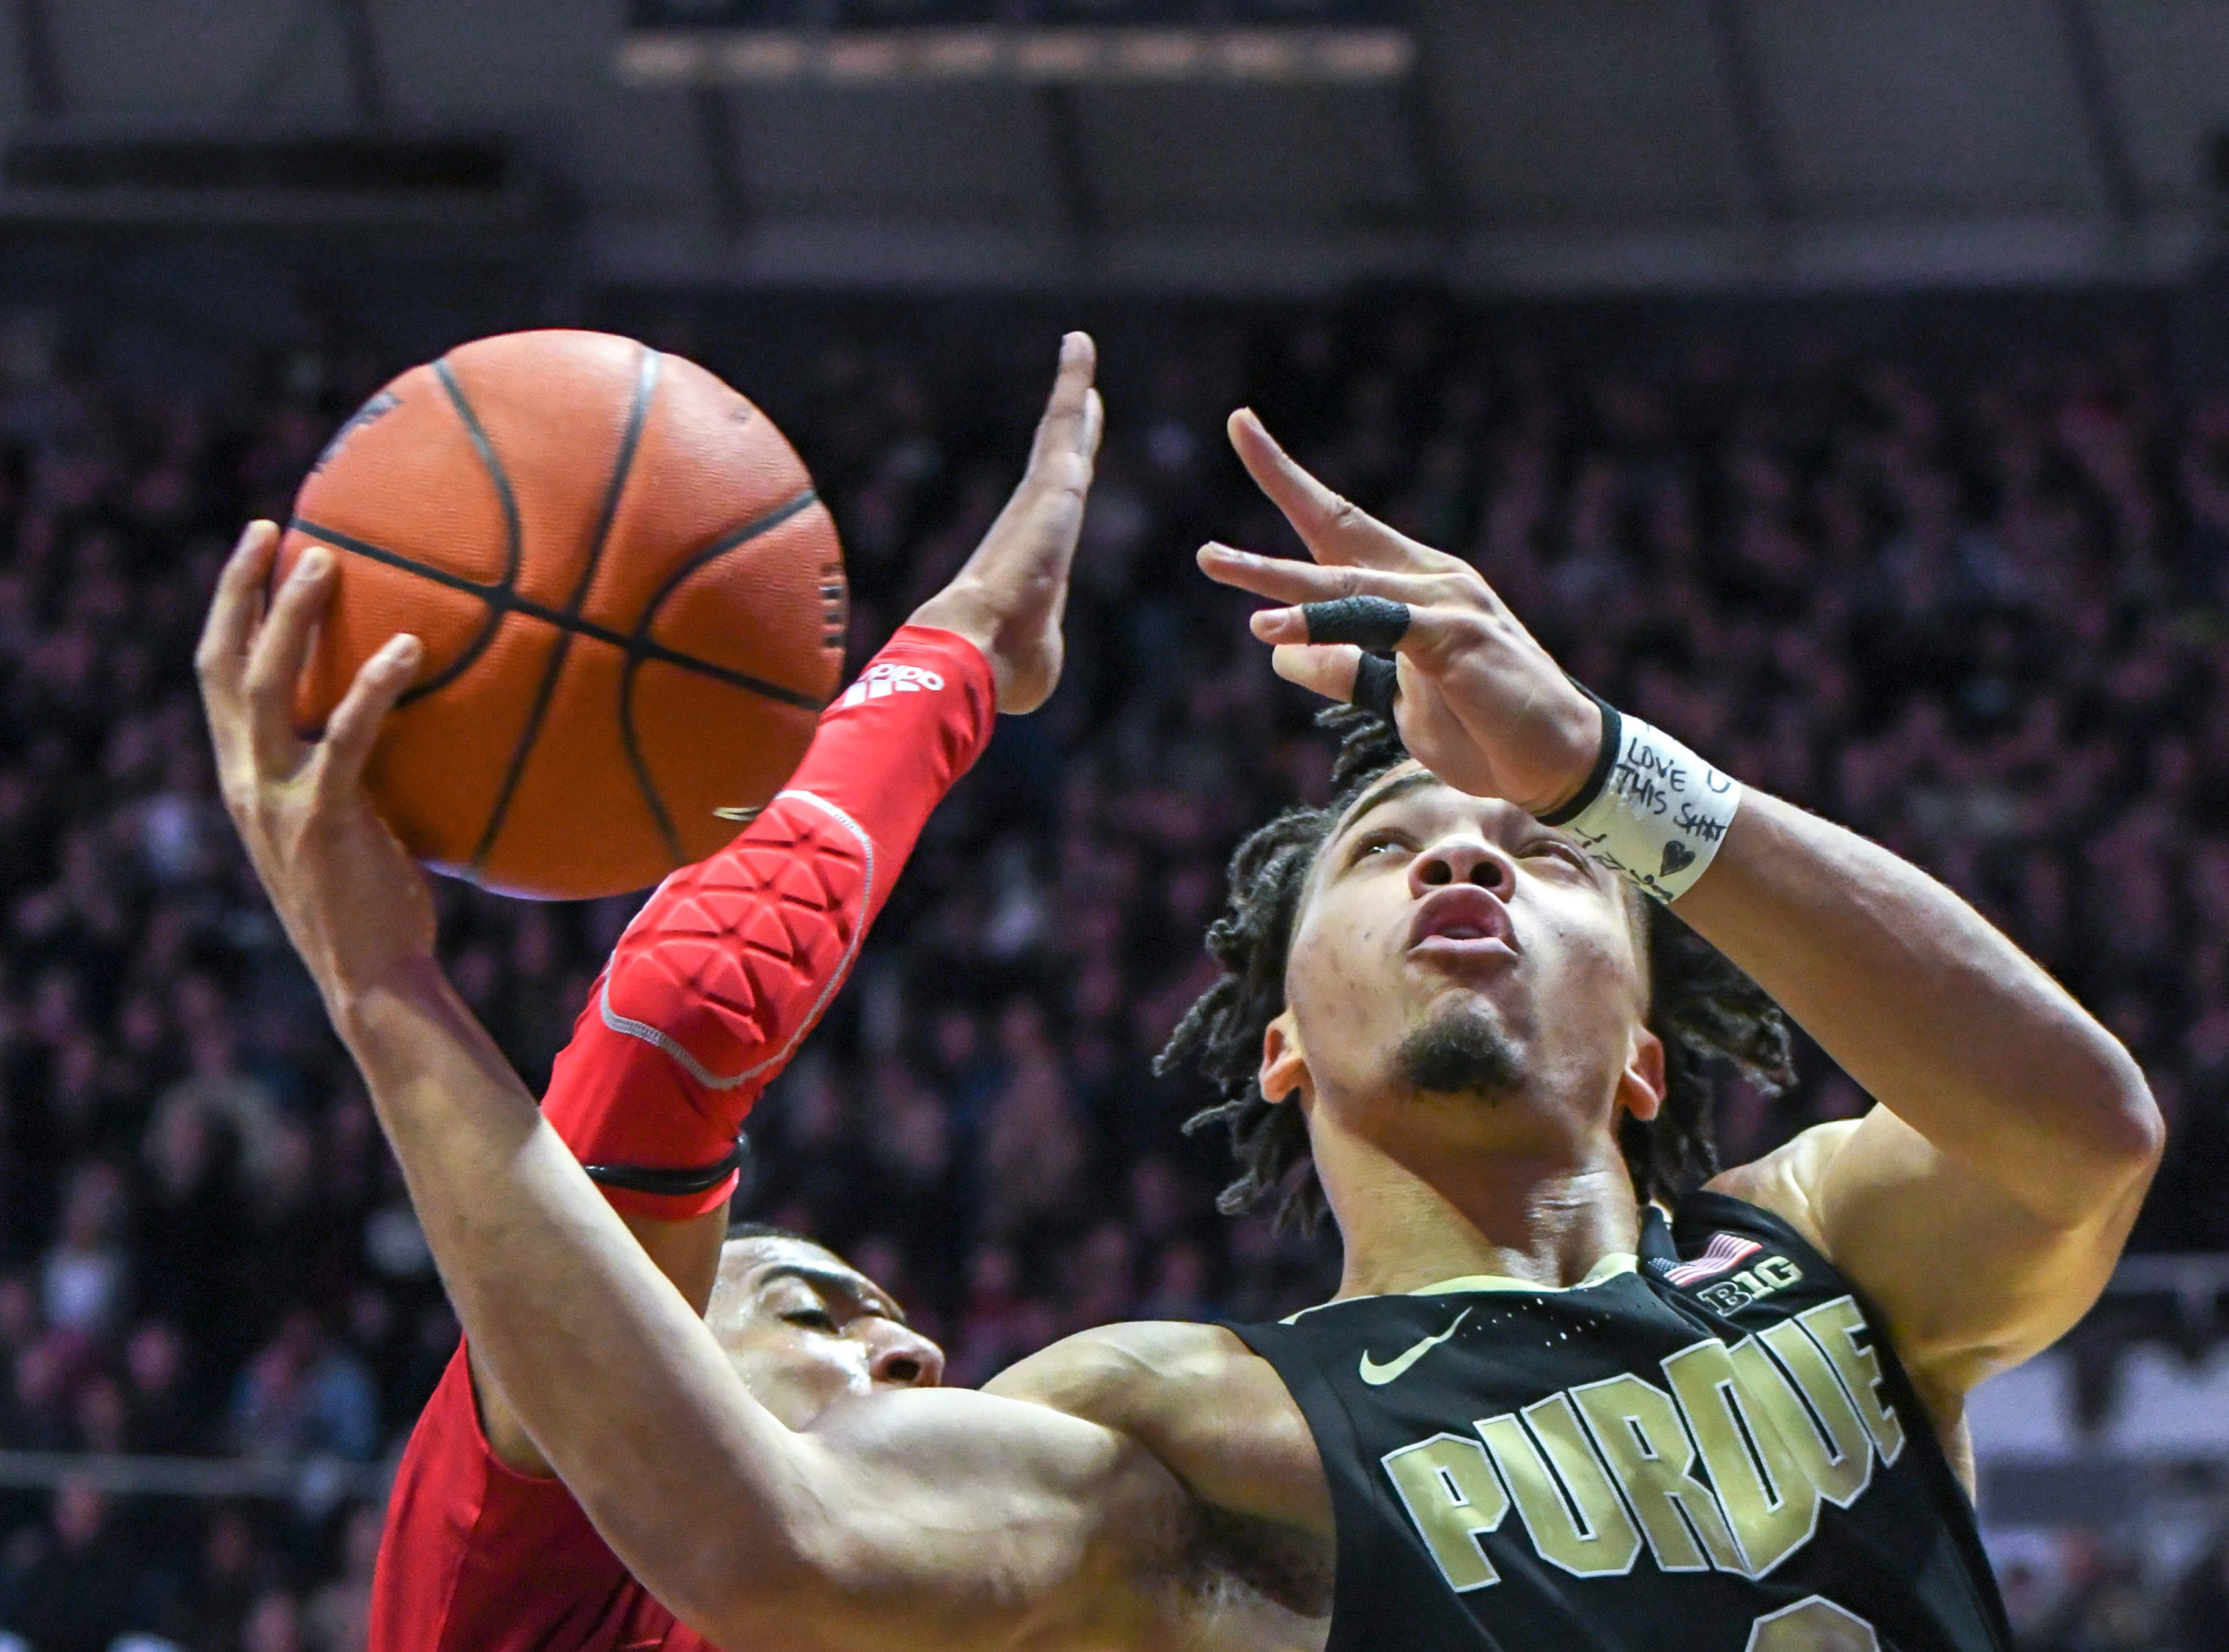 Purdue's Carsen Edwards drives for a score during the second half against Indiana University on January 19, 2019. Purdue won the game 70-55.